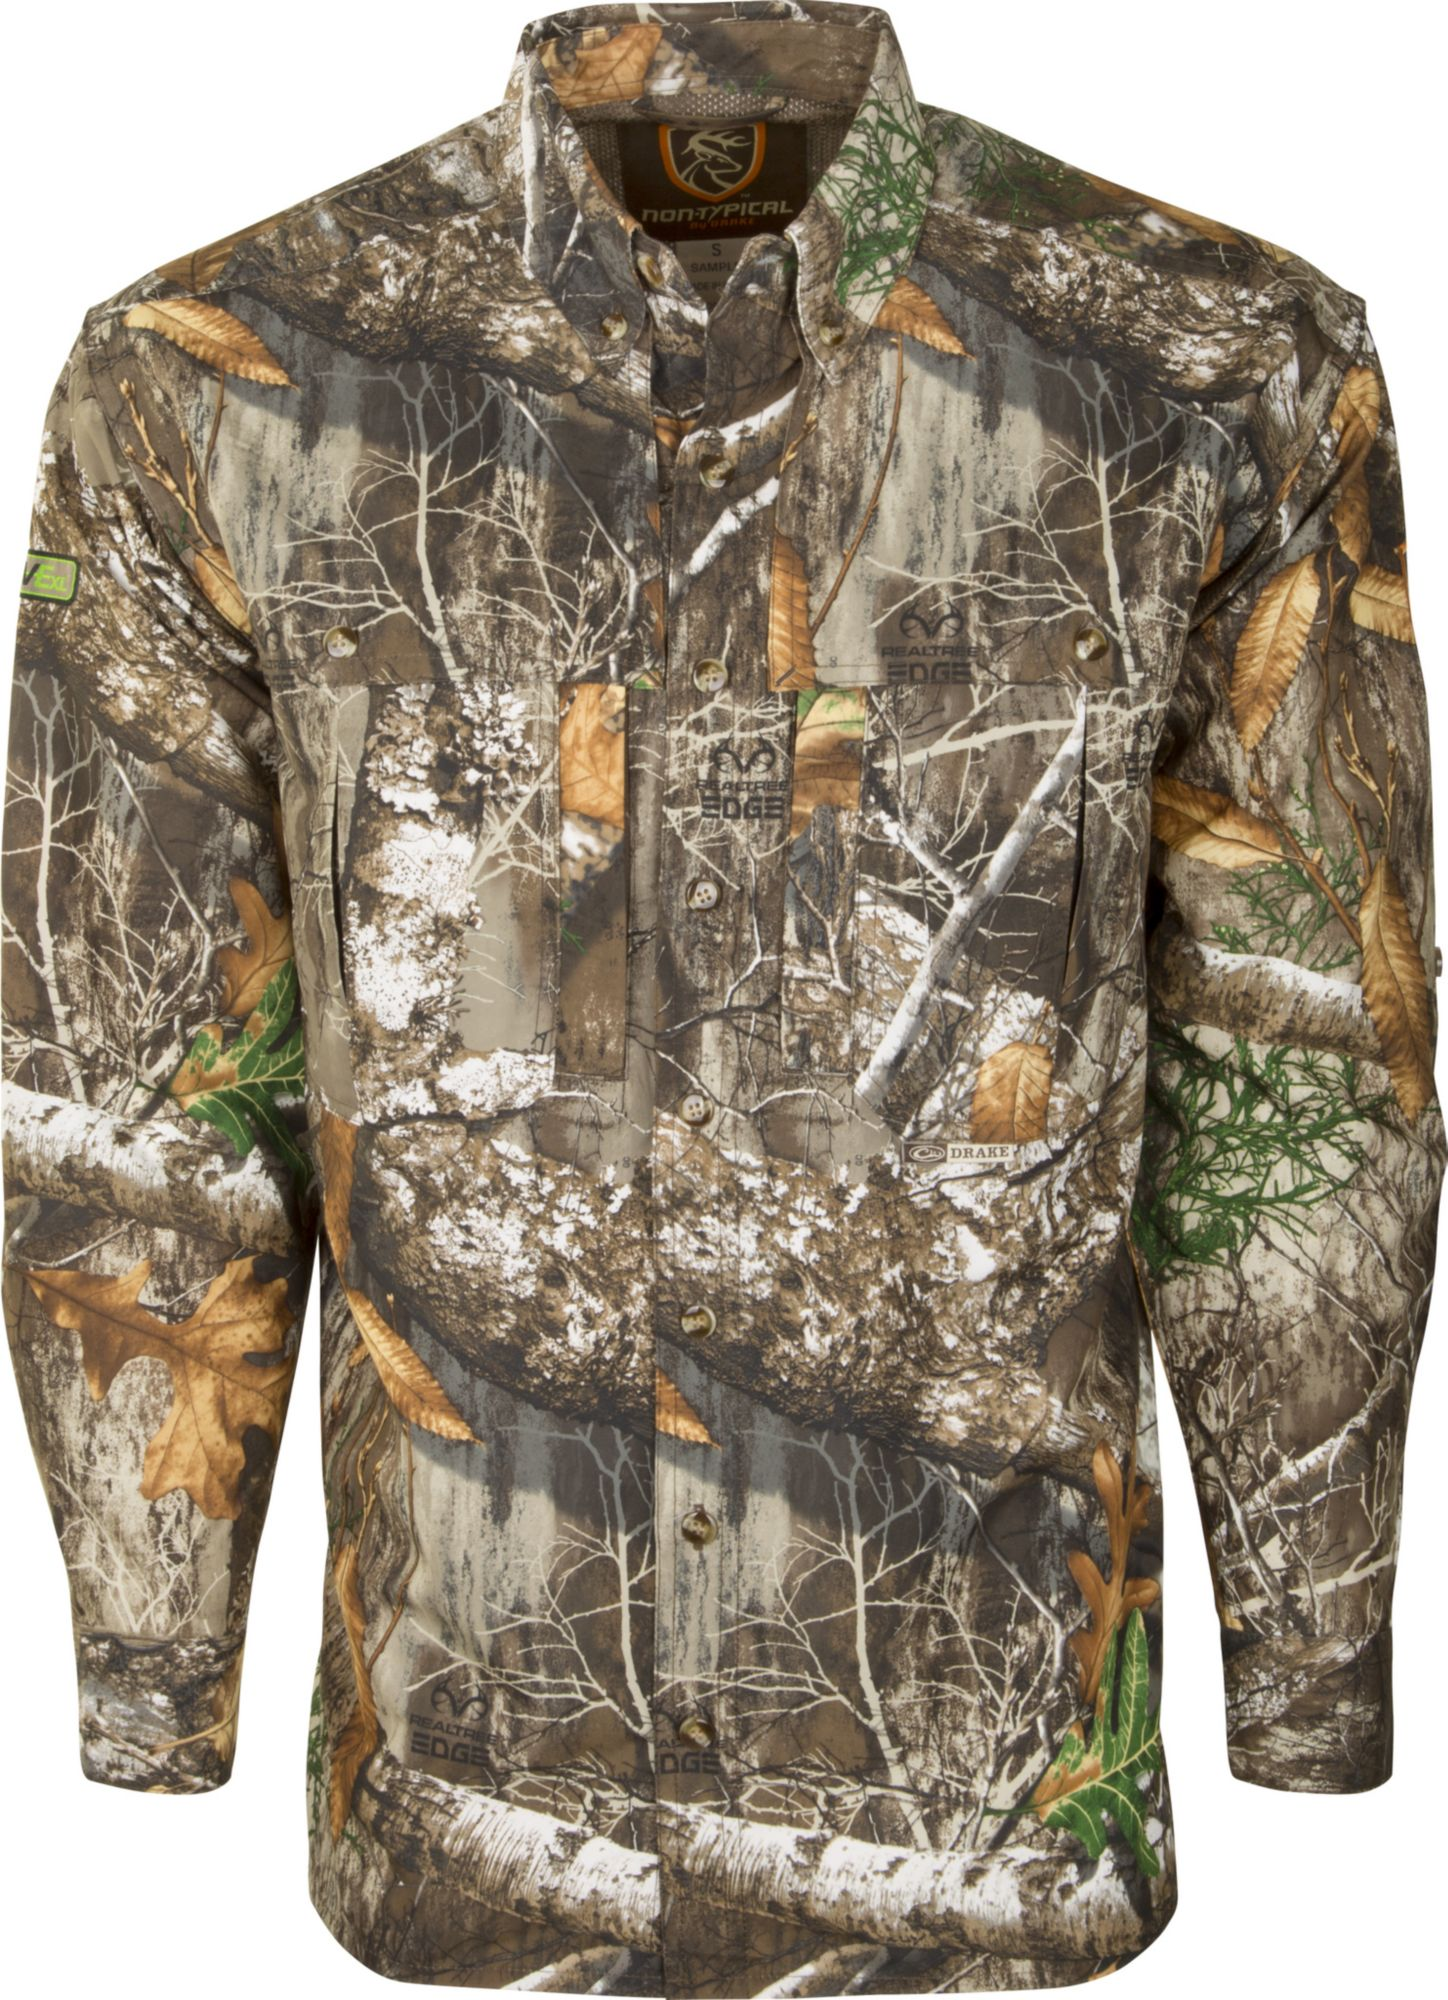 Drake Waterfowl Men's Non-Typical Dura-Lite Long Sleeve Hunting Shirt with Agion Active XL, Size: XXXL, Green thumbnail